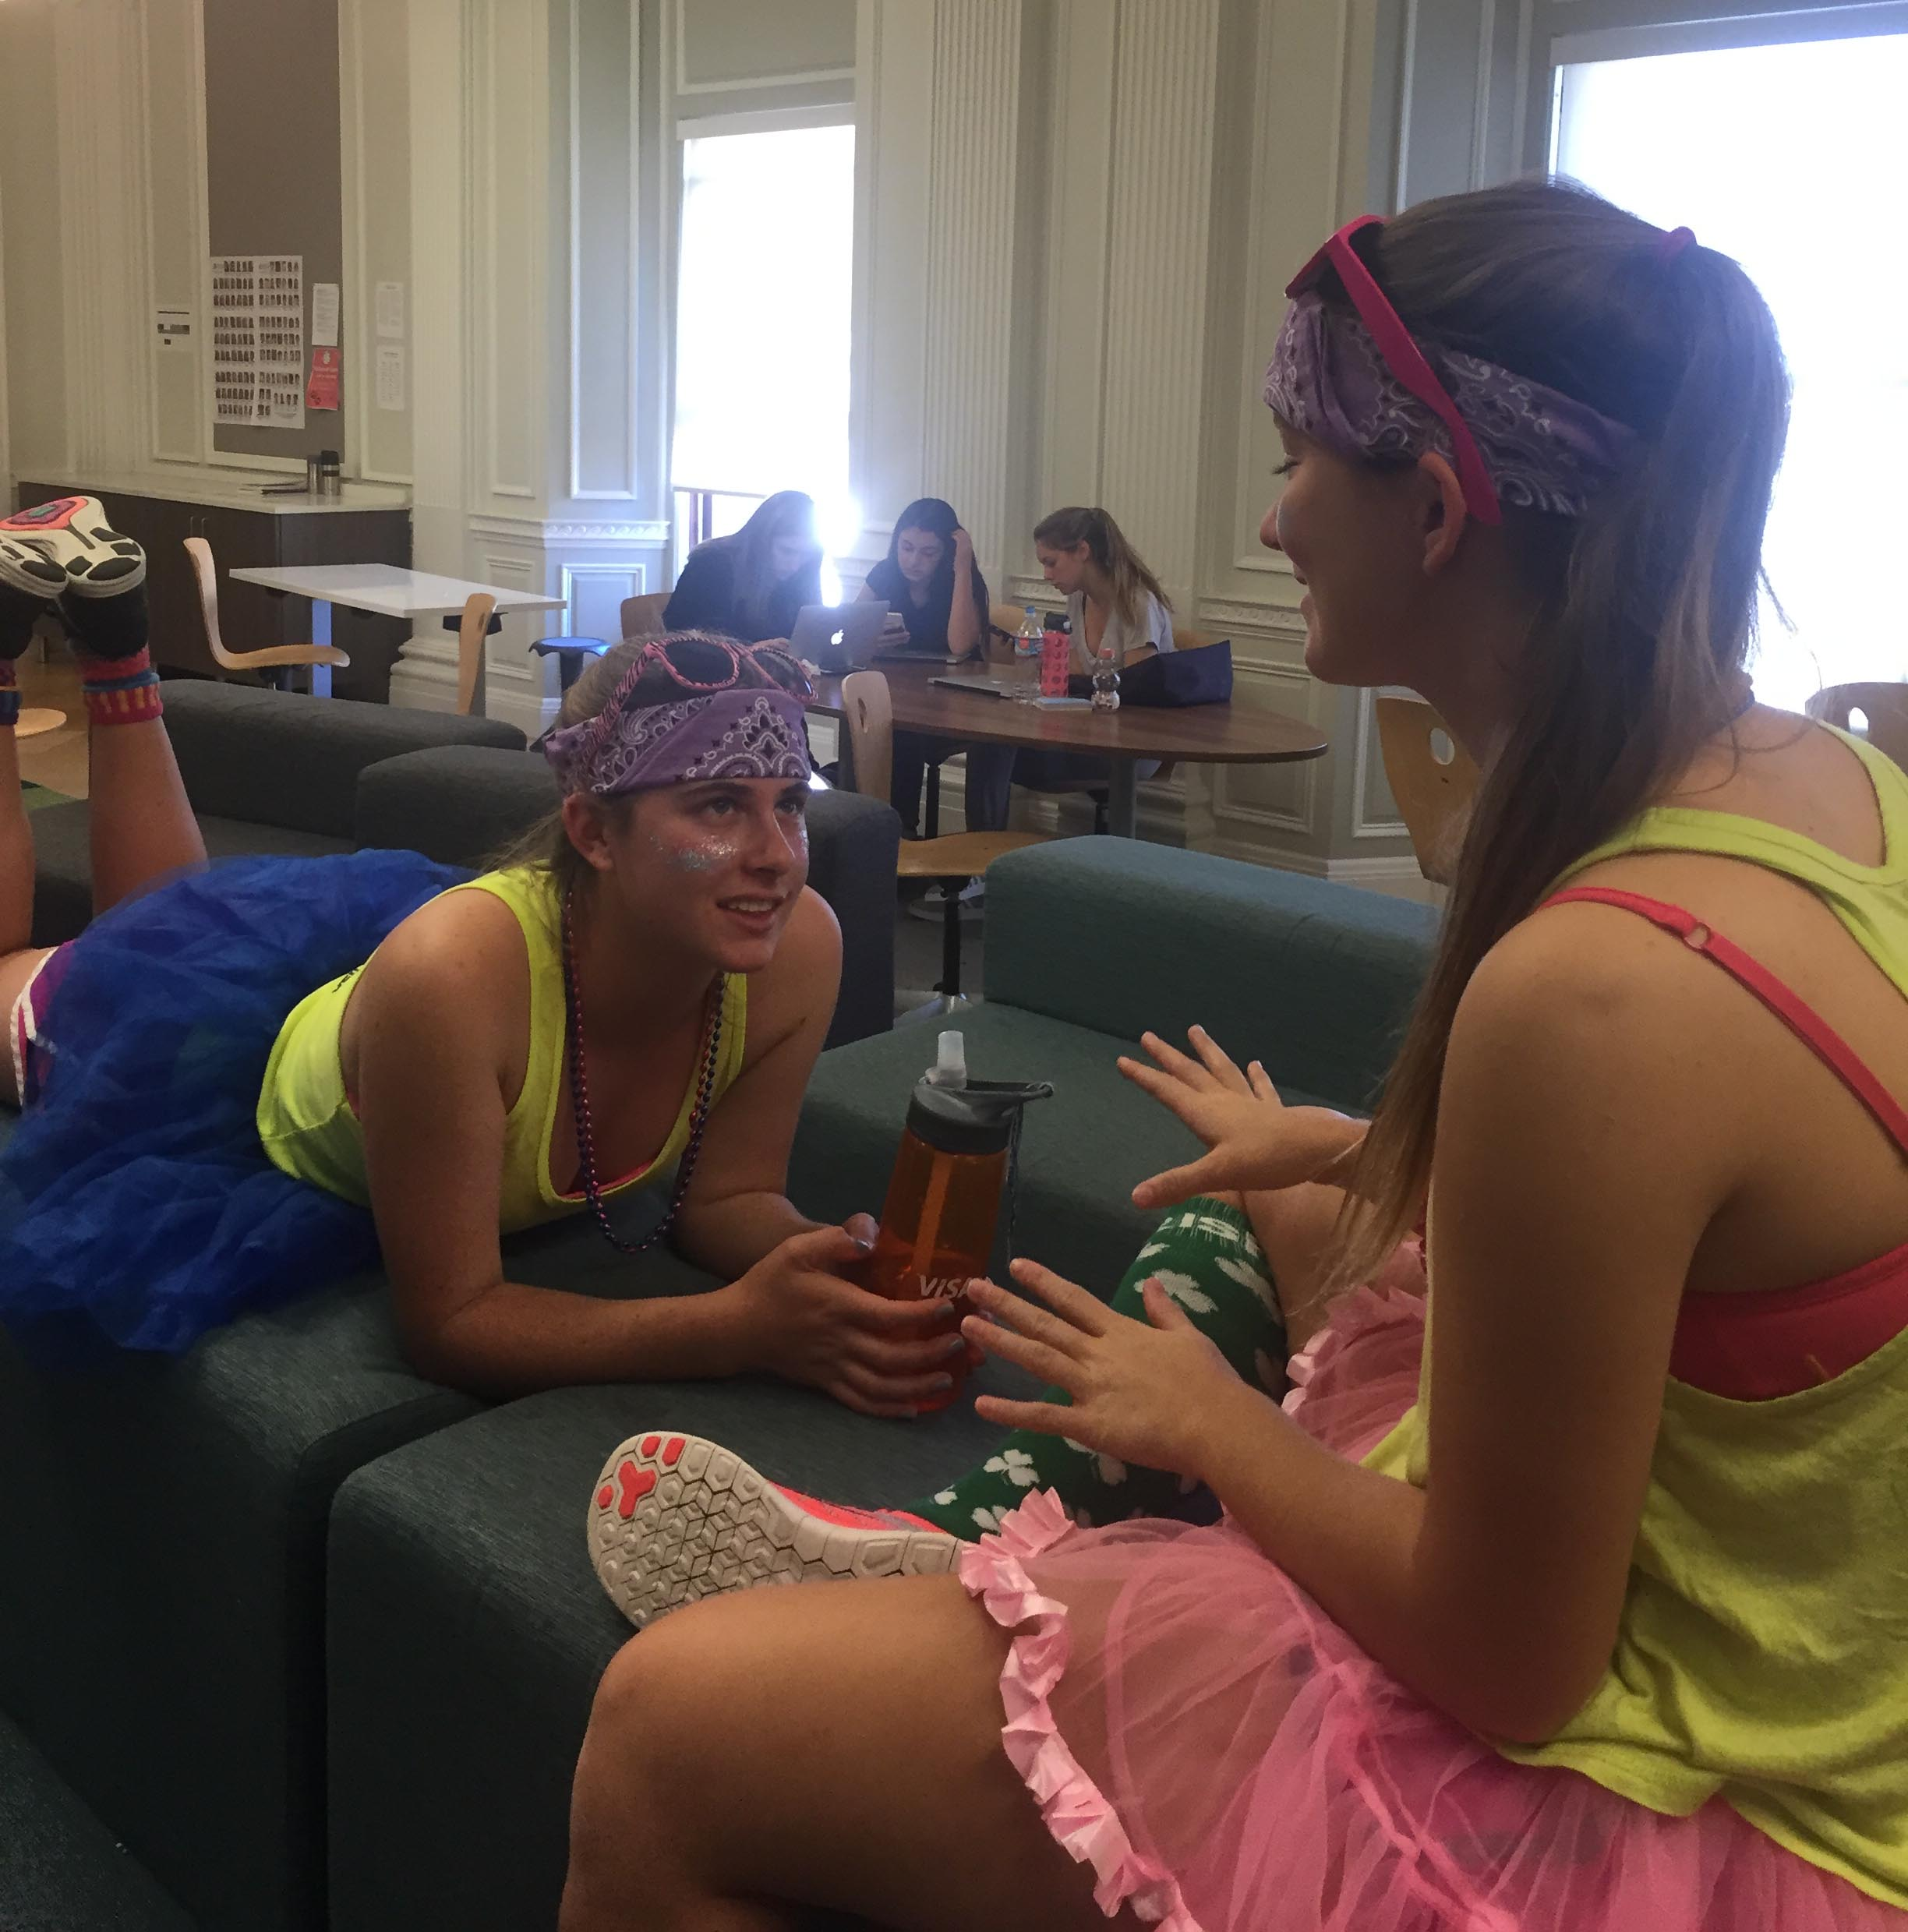 Seniors Katie Newbold and Delaney Moslander wear coordinating outfits for today's color day. The two handed out colorful bead necklaces to less eager participants.